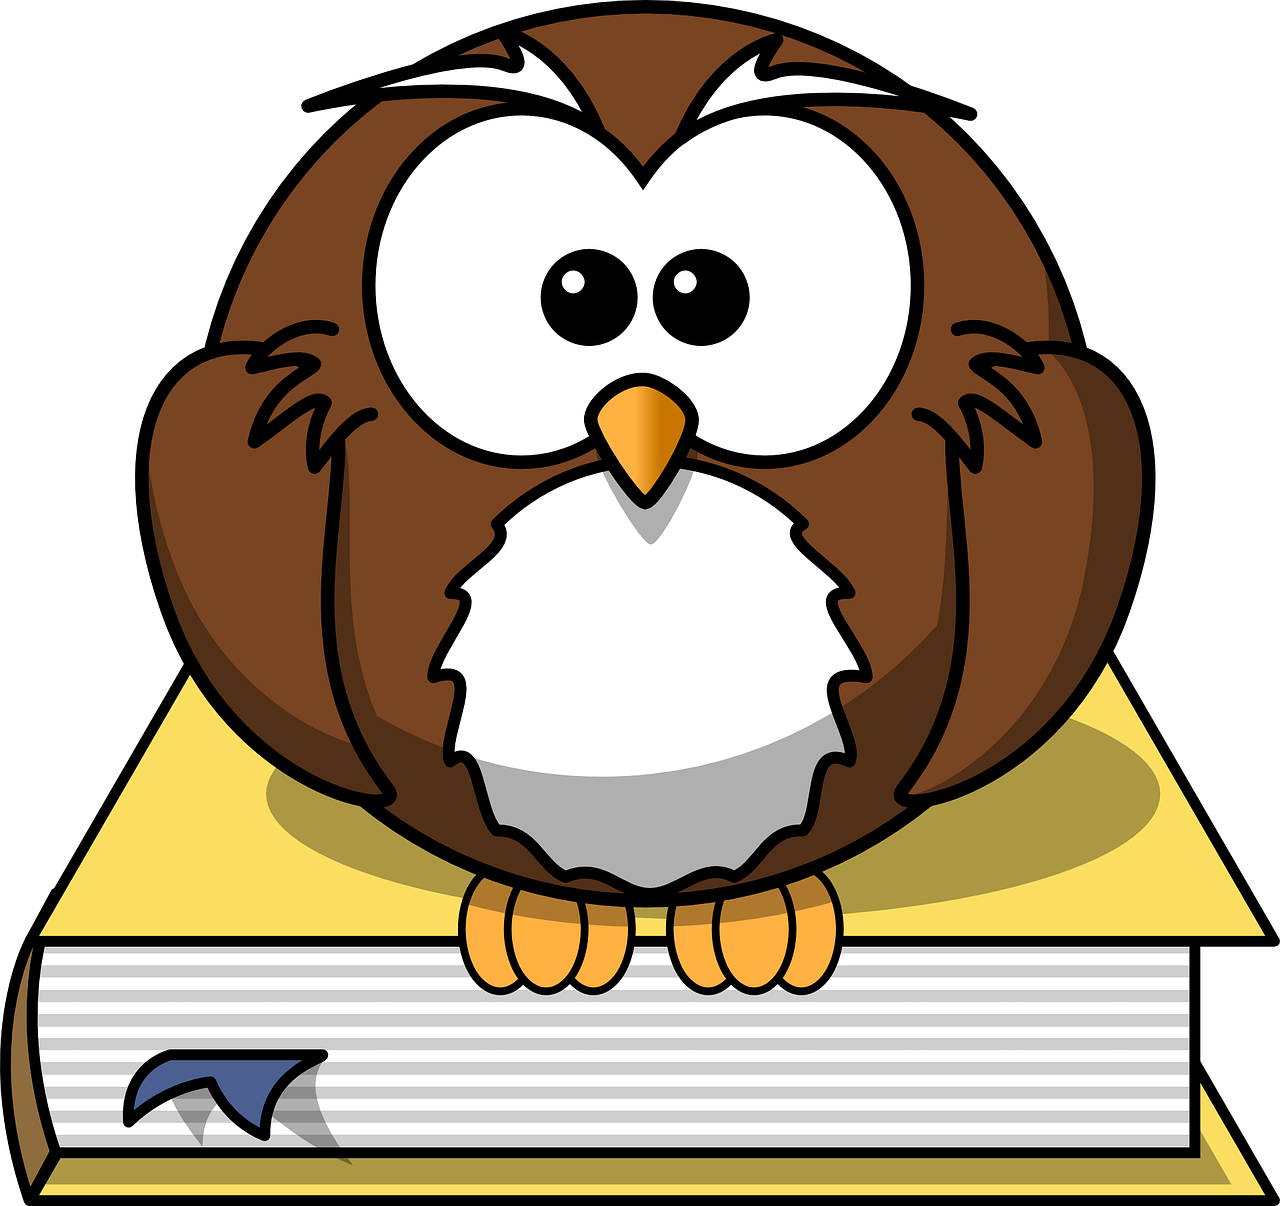 illustration of cute, fluffy, small, brown owl perched on a book